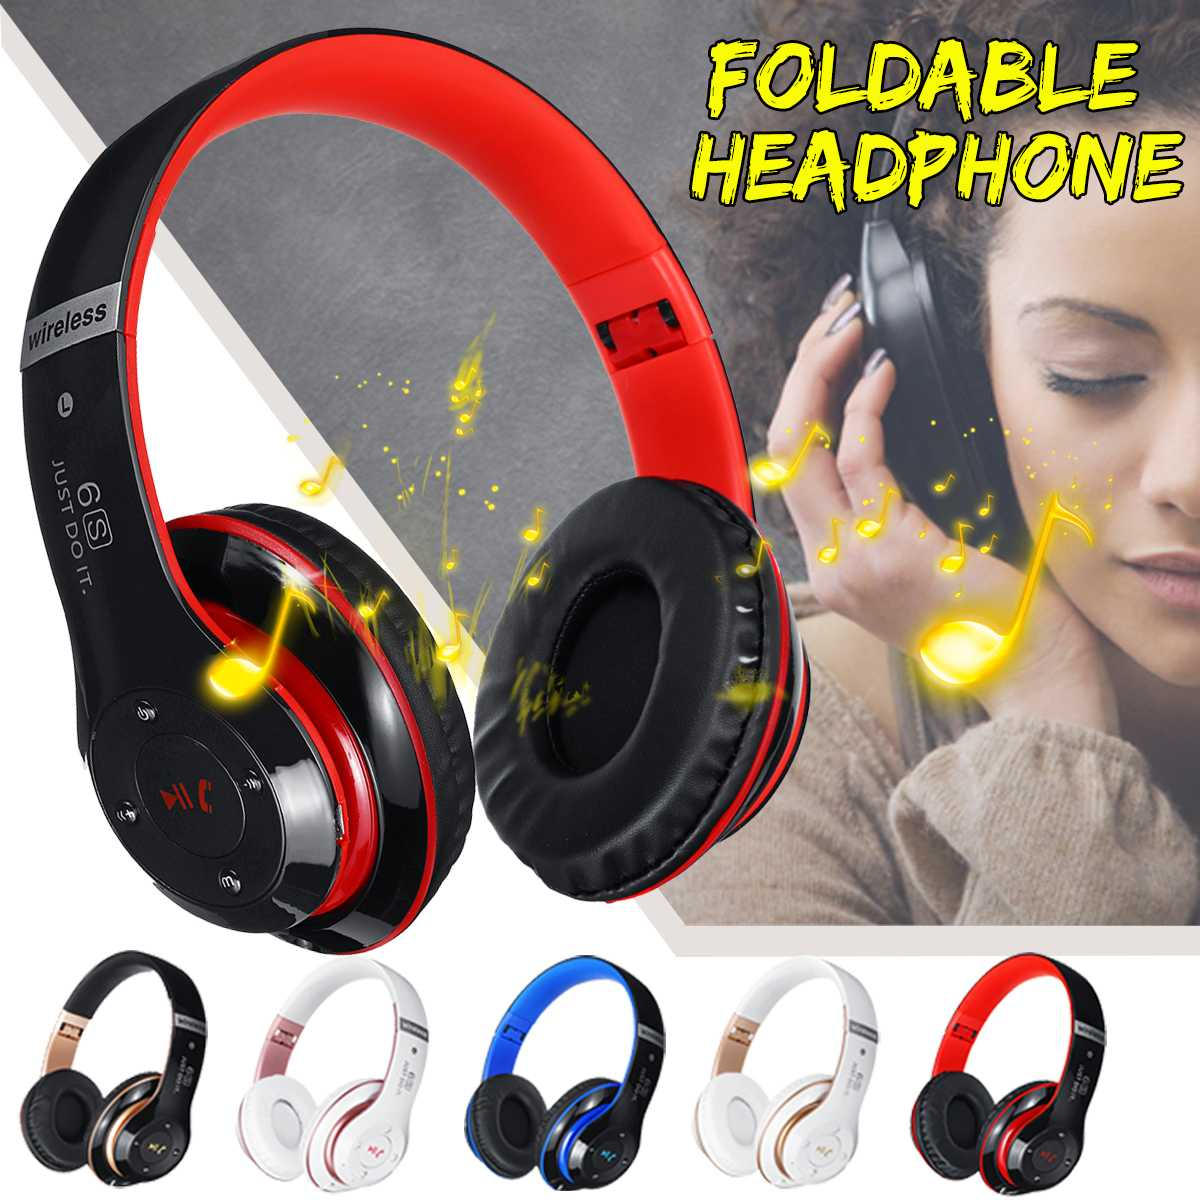 bluetooth Over Ear Foldable Headphones Wireless Stereo Headset Noise Cancelling with Mic TF FM for PC/Cell Phones/TV/Computer